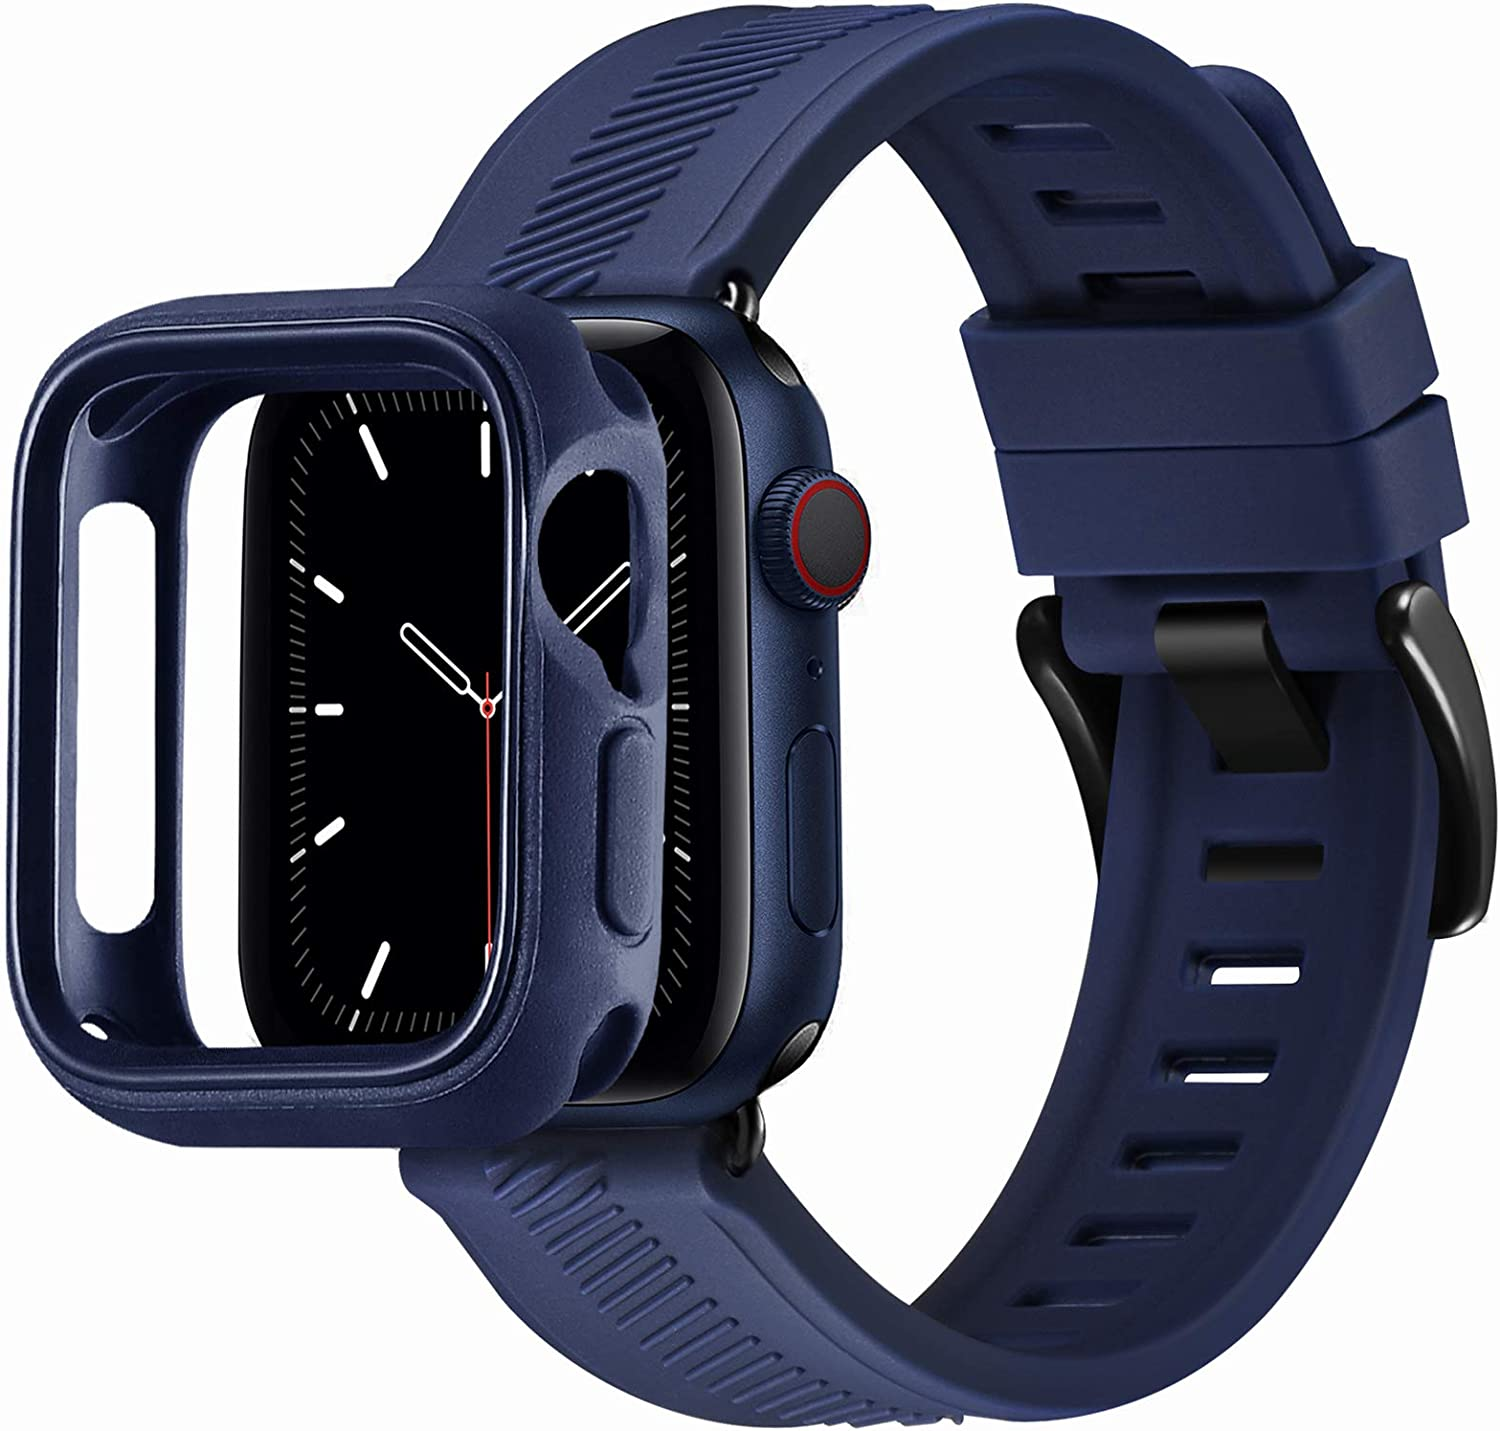 BesBand Compatible with Apple Watch Bands 44mm 42mm 40mm 38mm, Soft Silicone Waterproof Sport Band Loop with Protective Case for iWatch Series 6/5/4/3/2/1&SE (Navy Blue/Black, 42mm/44mm)